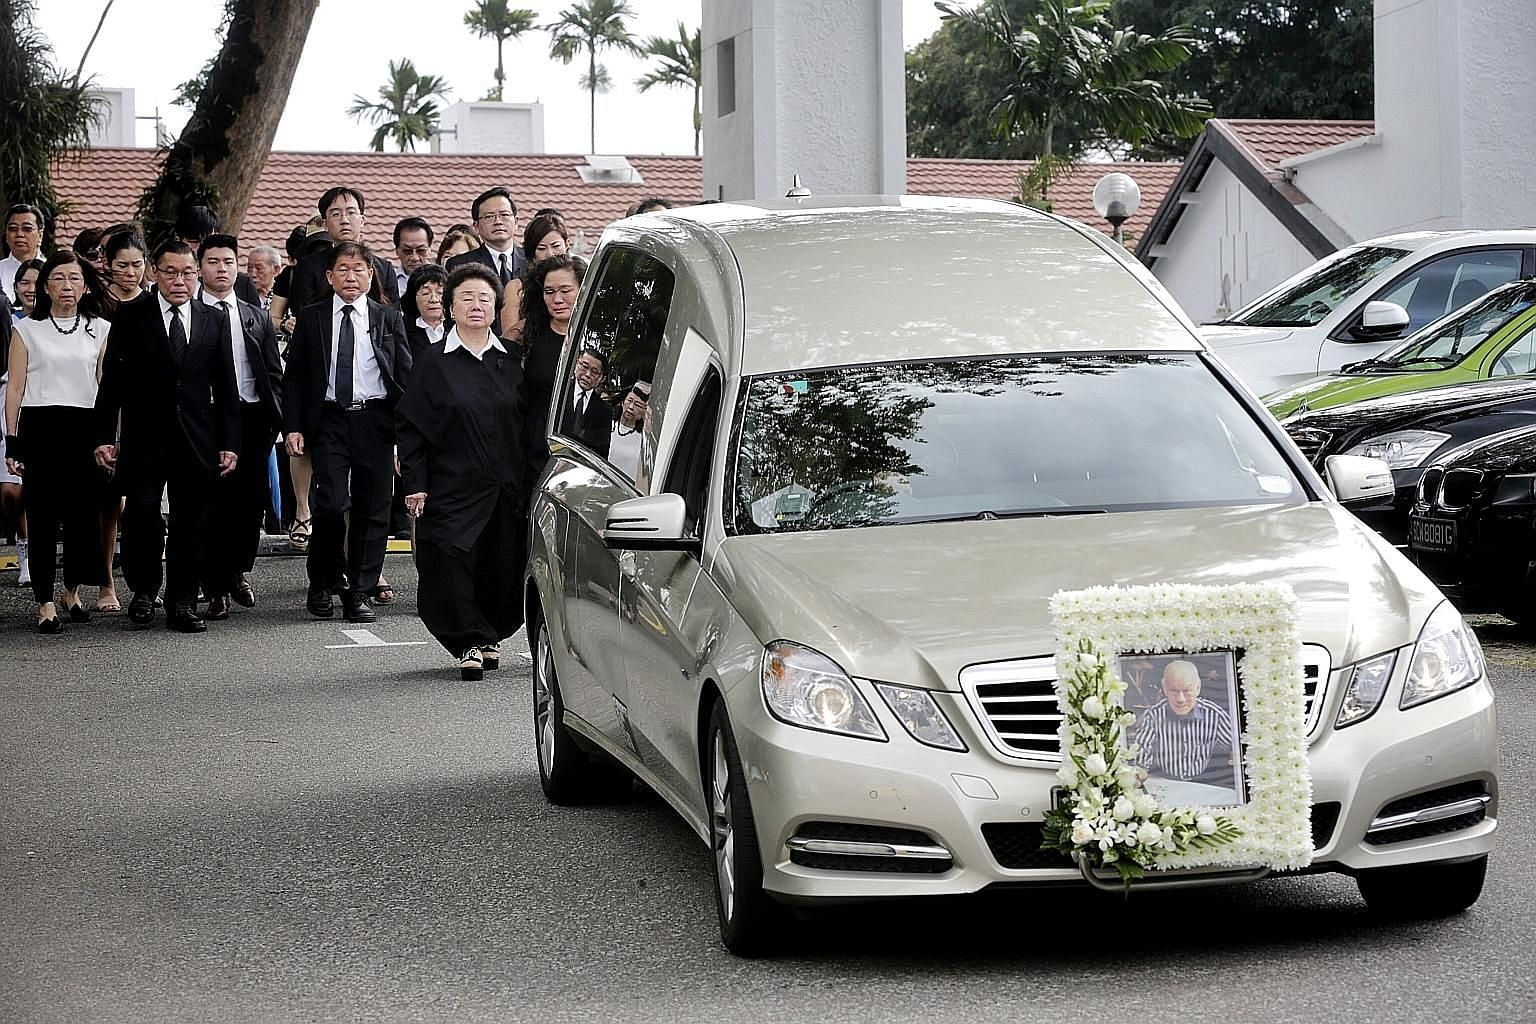 The cortege leaving Mount Vernon Sanctuary for Mandai Crematorium, after the funeral service for the late Mr Lee Khoon Choy yesterday. Mr Lee leaves behind his wife, seven children and 11 grandchildren.